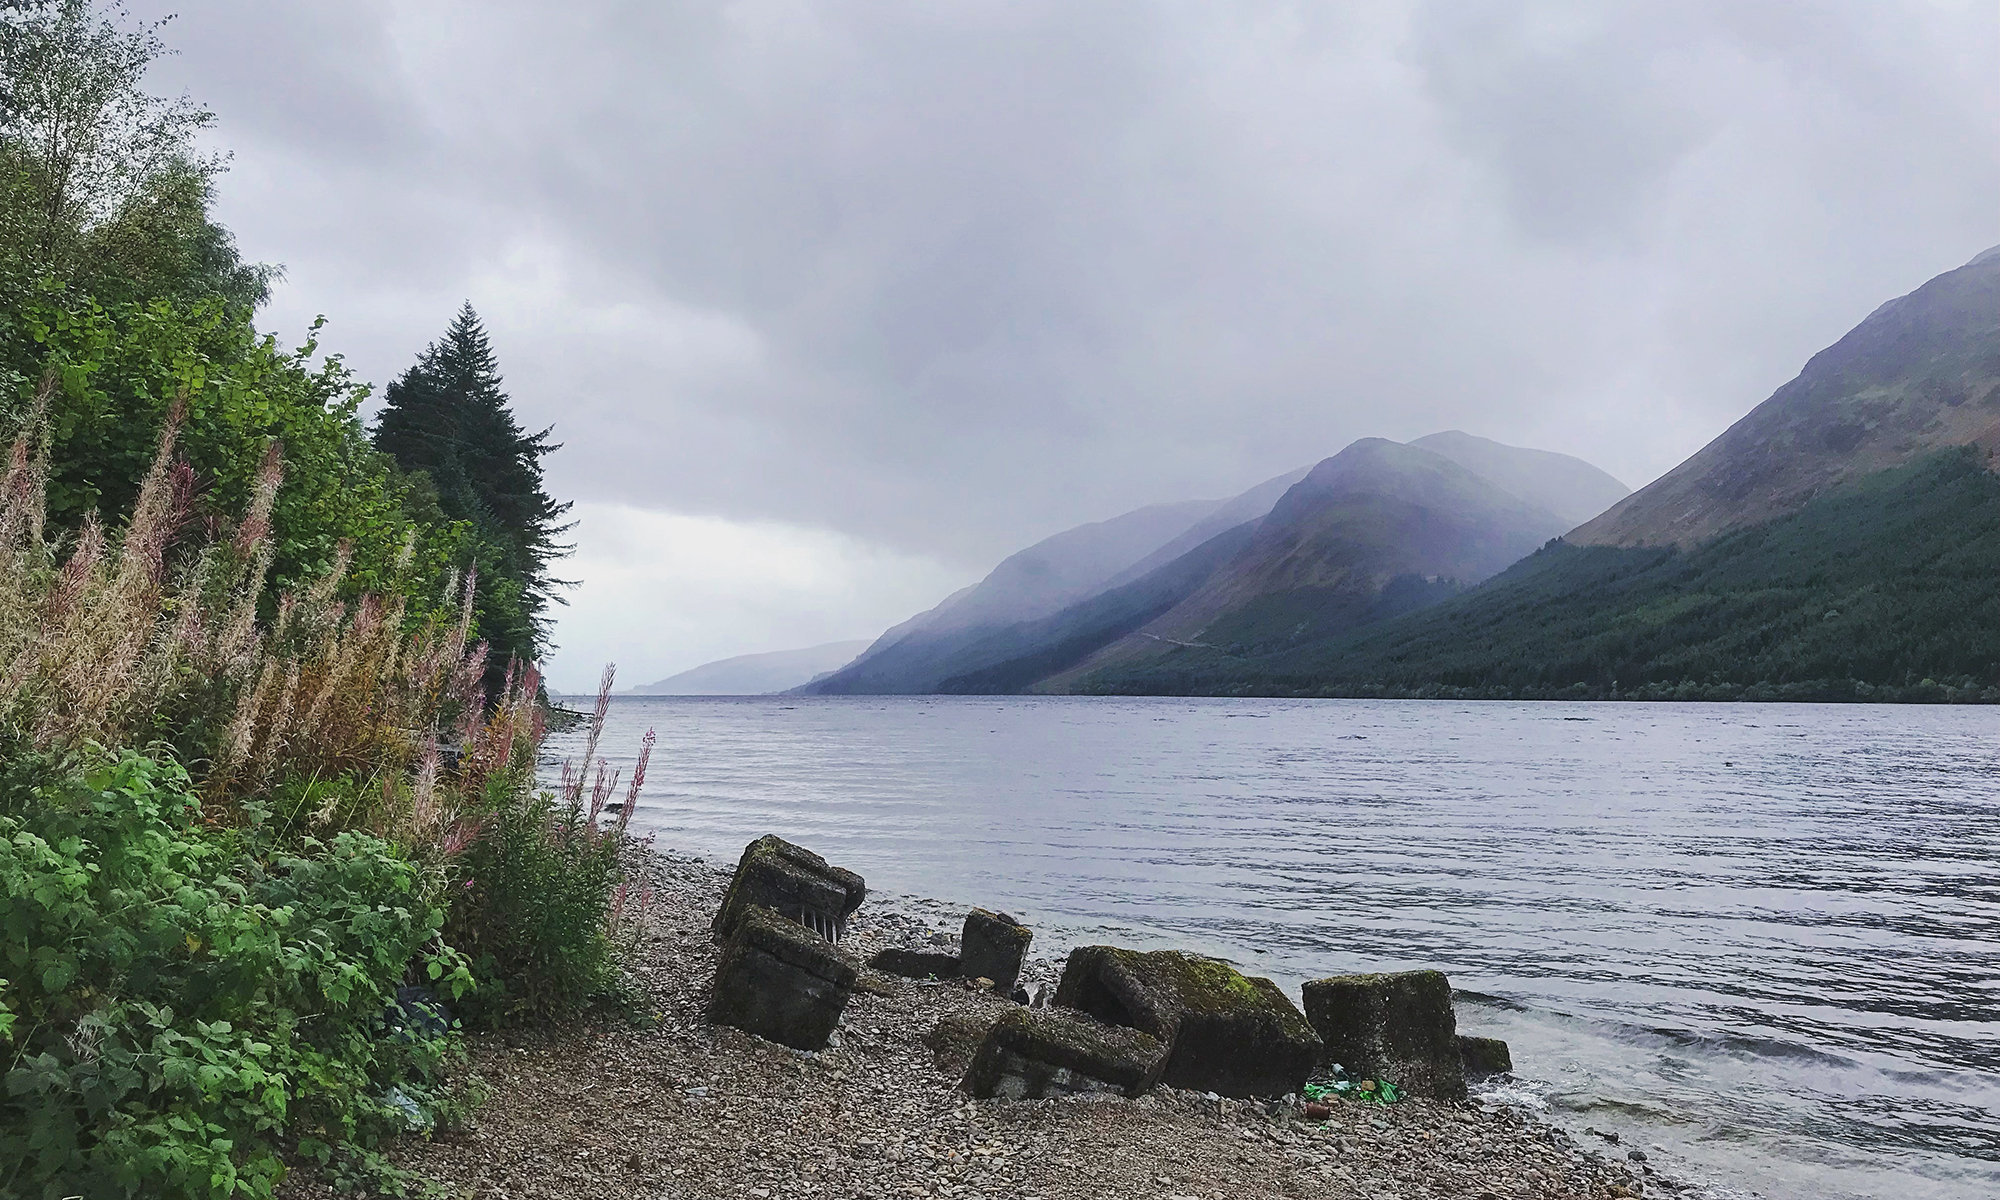 Photo of the shore of Loch Lochy with a pebble beach and misty mountains